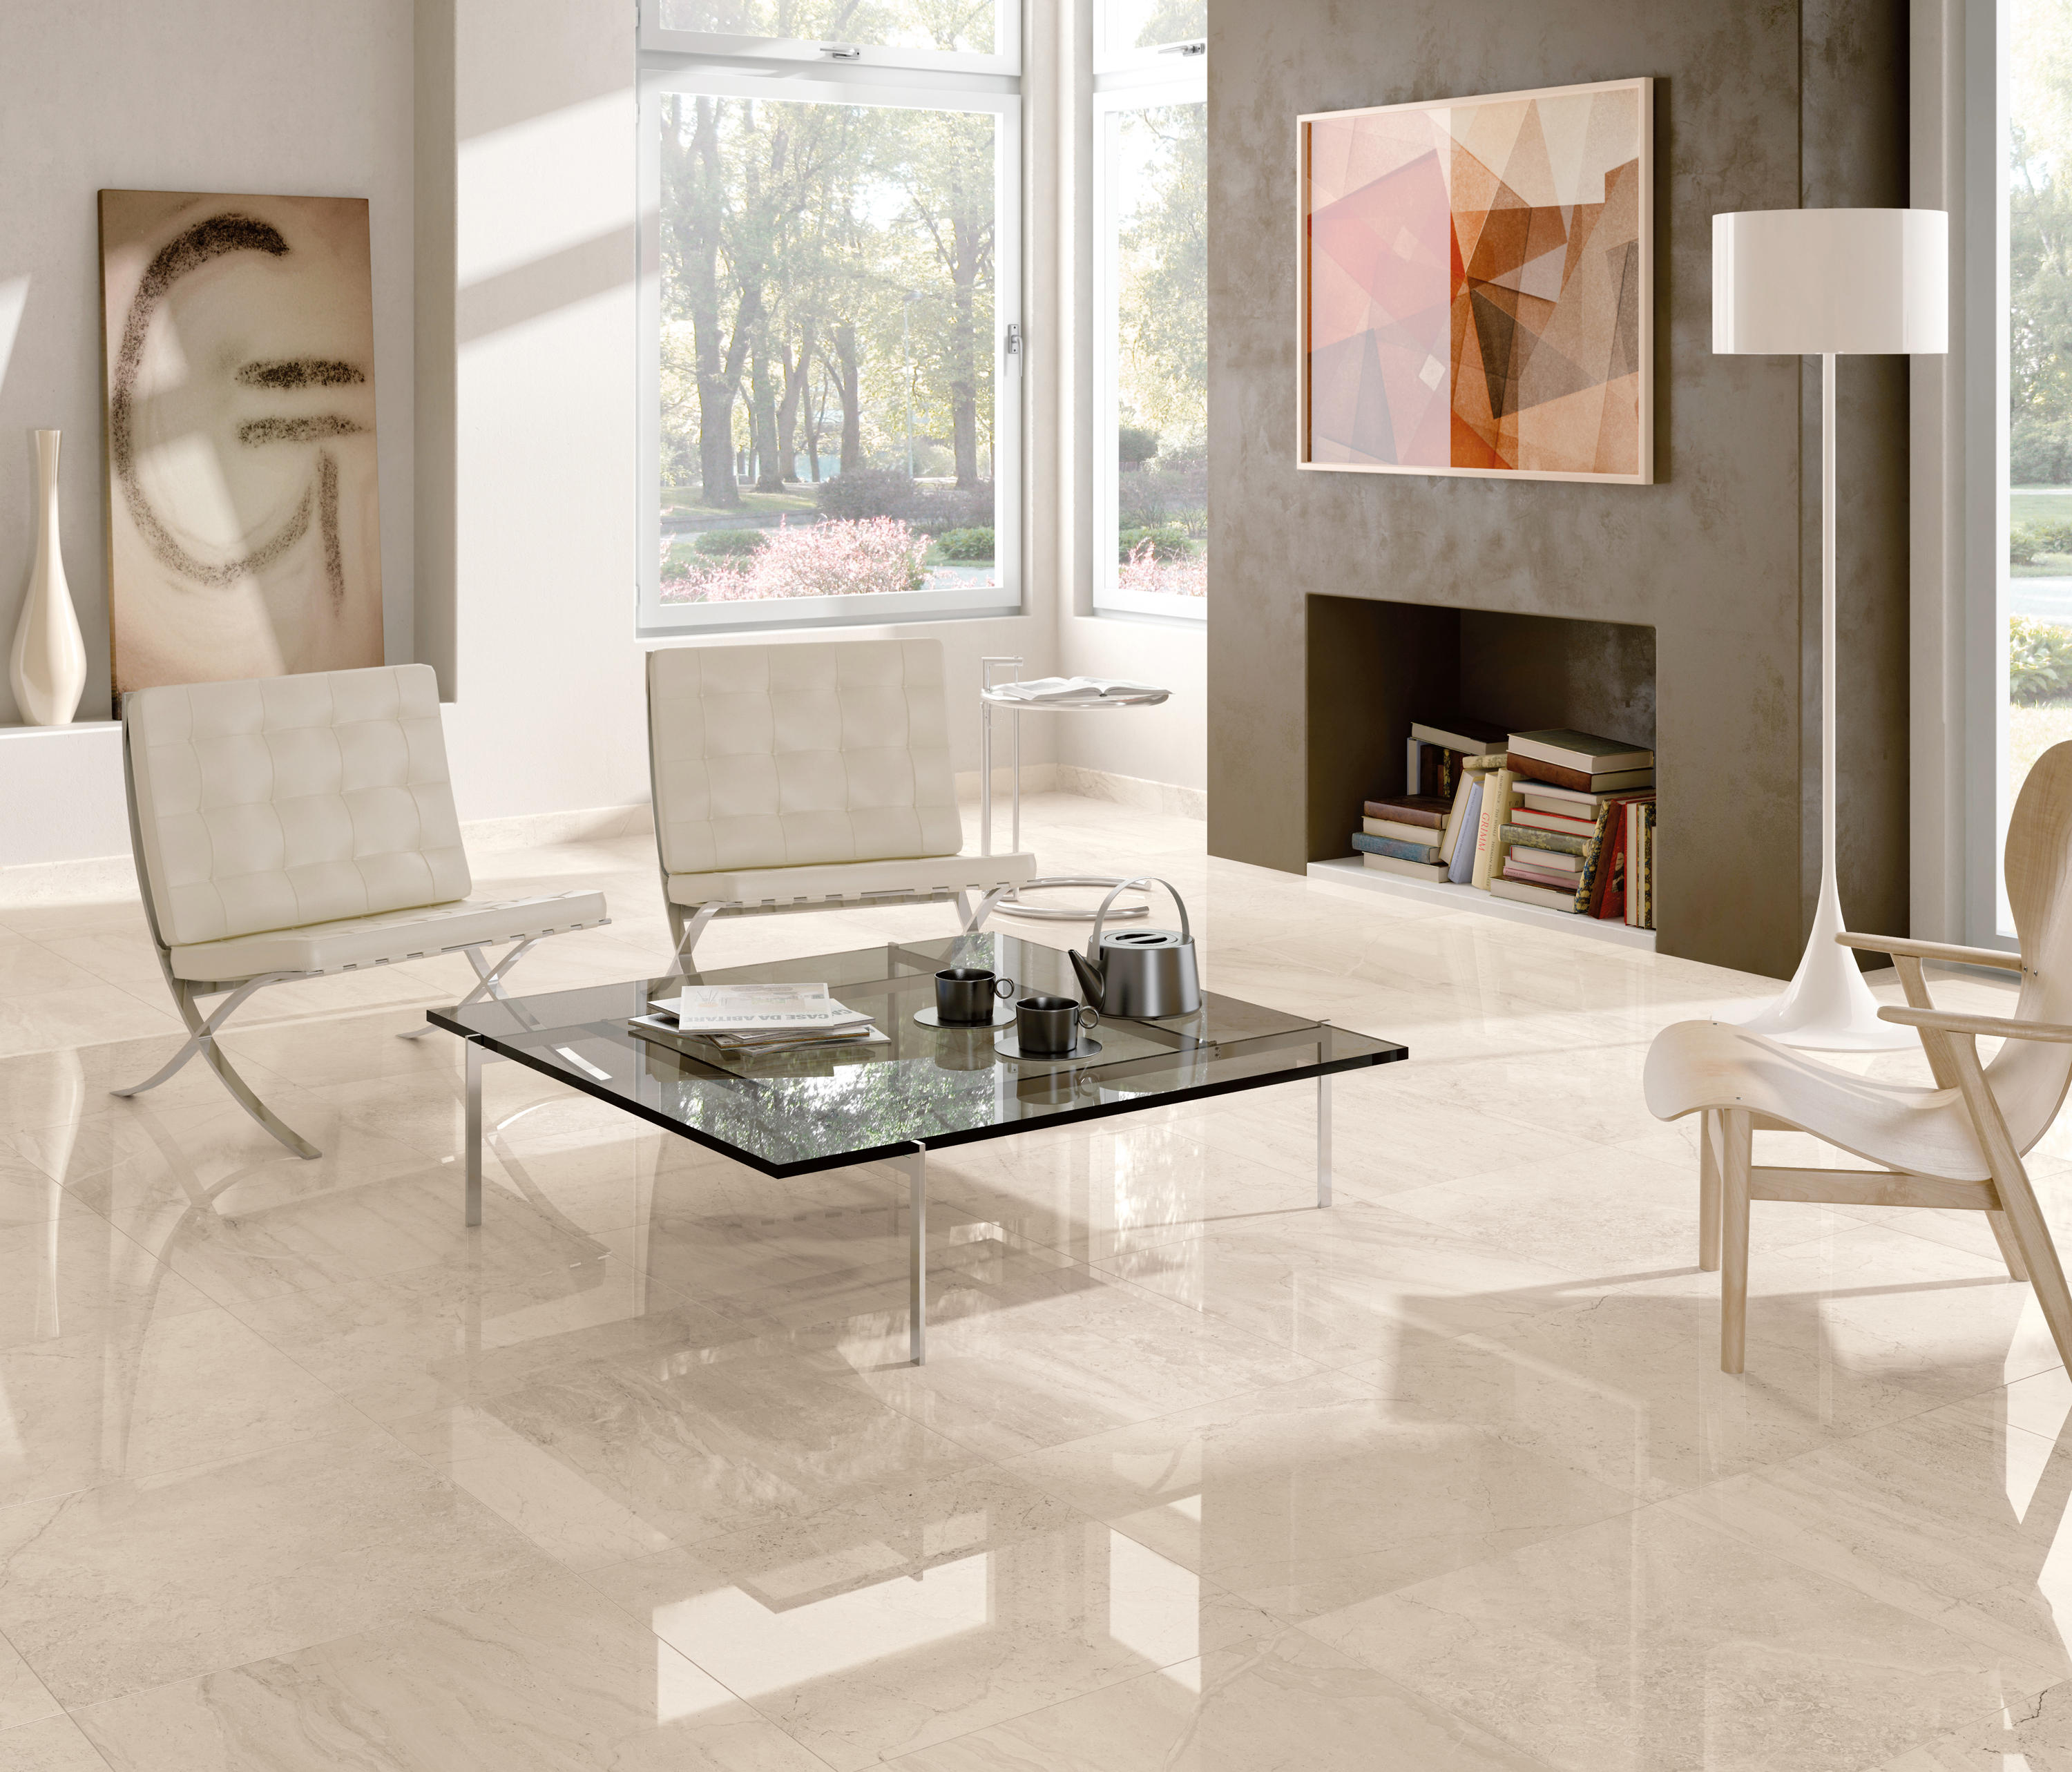 GOTHA BRONZE - Carrelage céramique de Ceramiche Supergres | Architonic